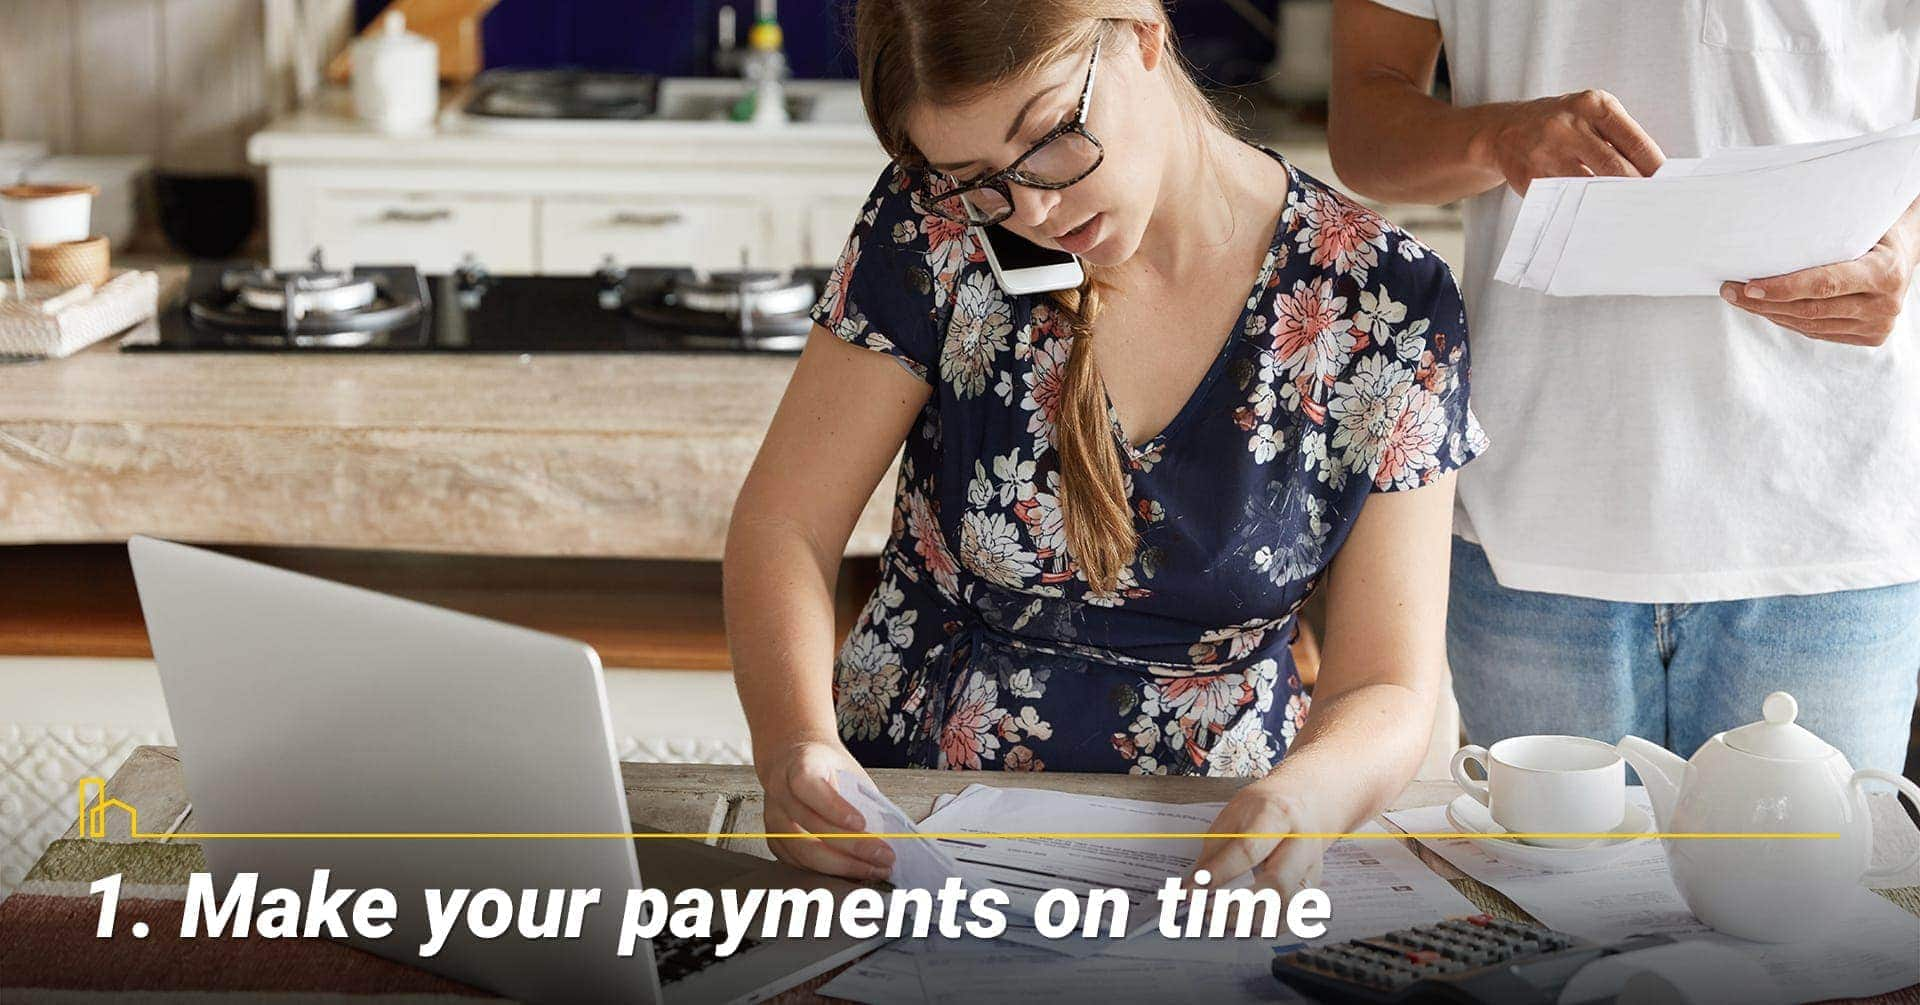 The single most important thing that you can do to have good credit is to continually make your payments on time. Make your payments on time